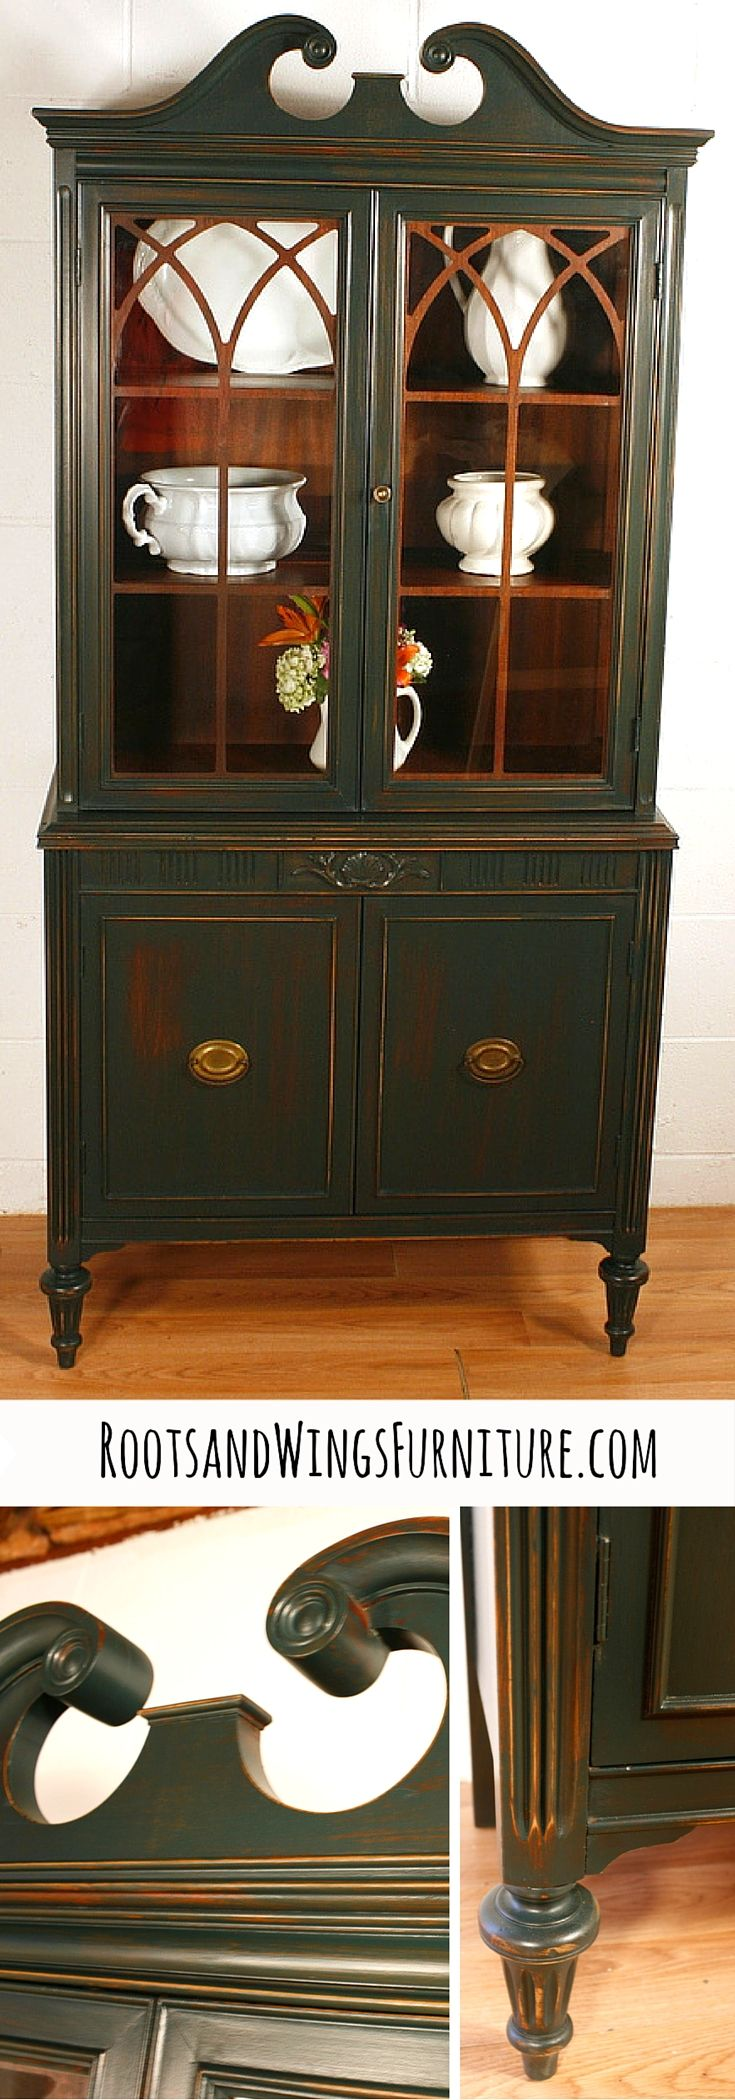 25 best ideas about antique china cabinets on pinterest. Black Bedroom Furniture Sets. Home Design Ideas